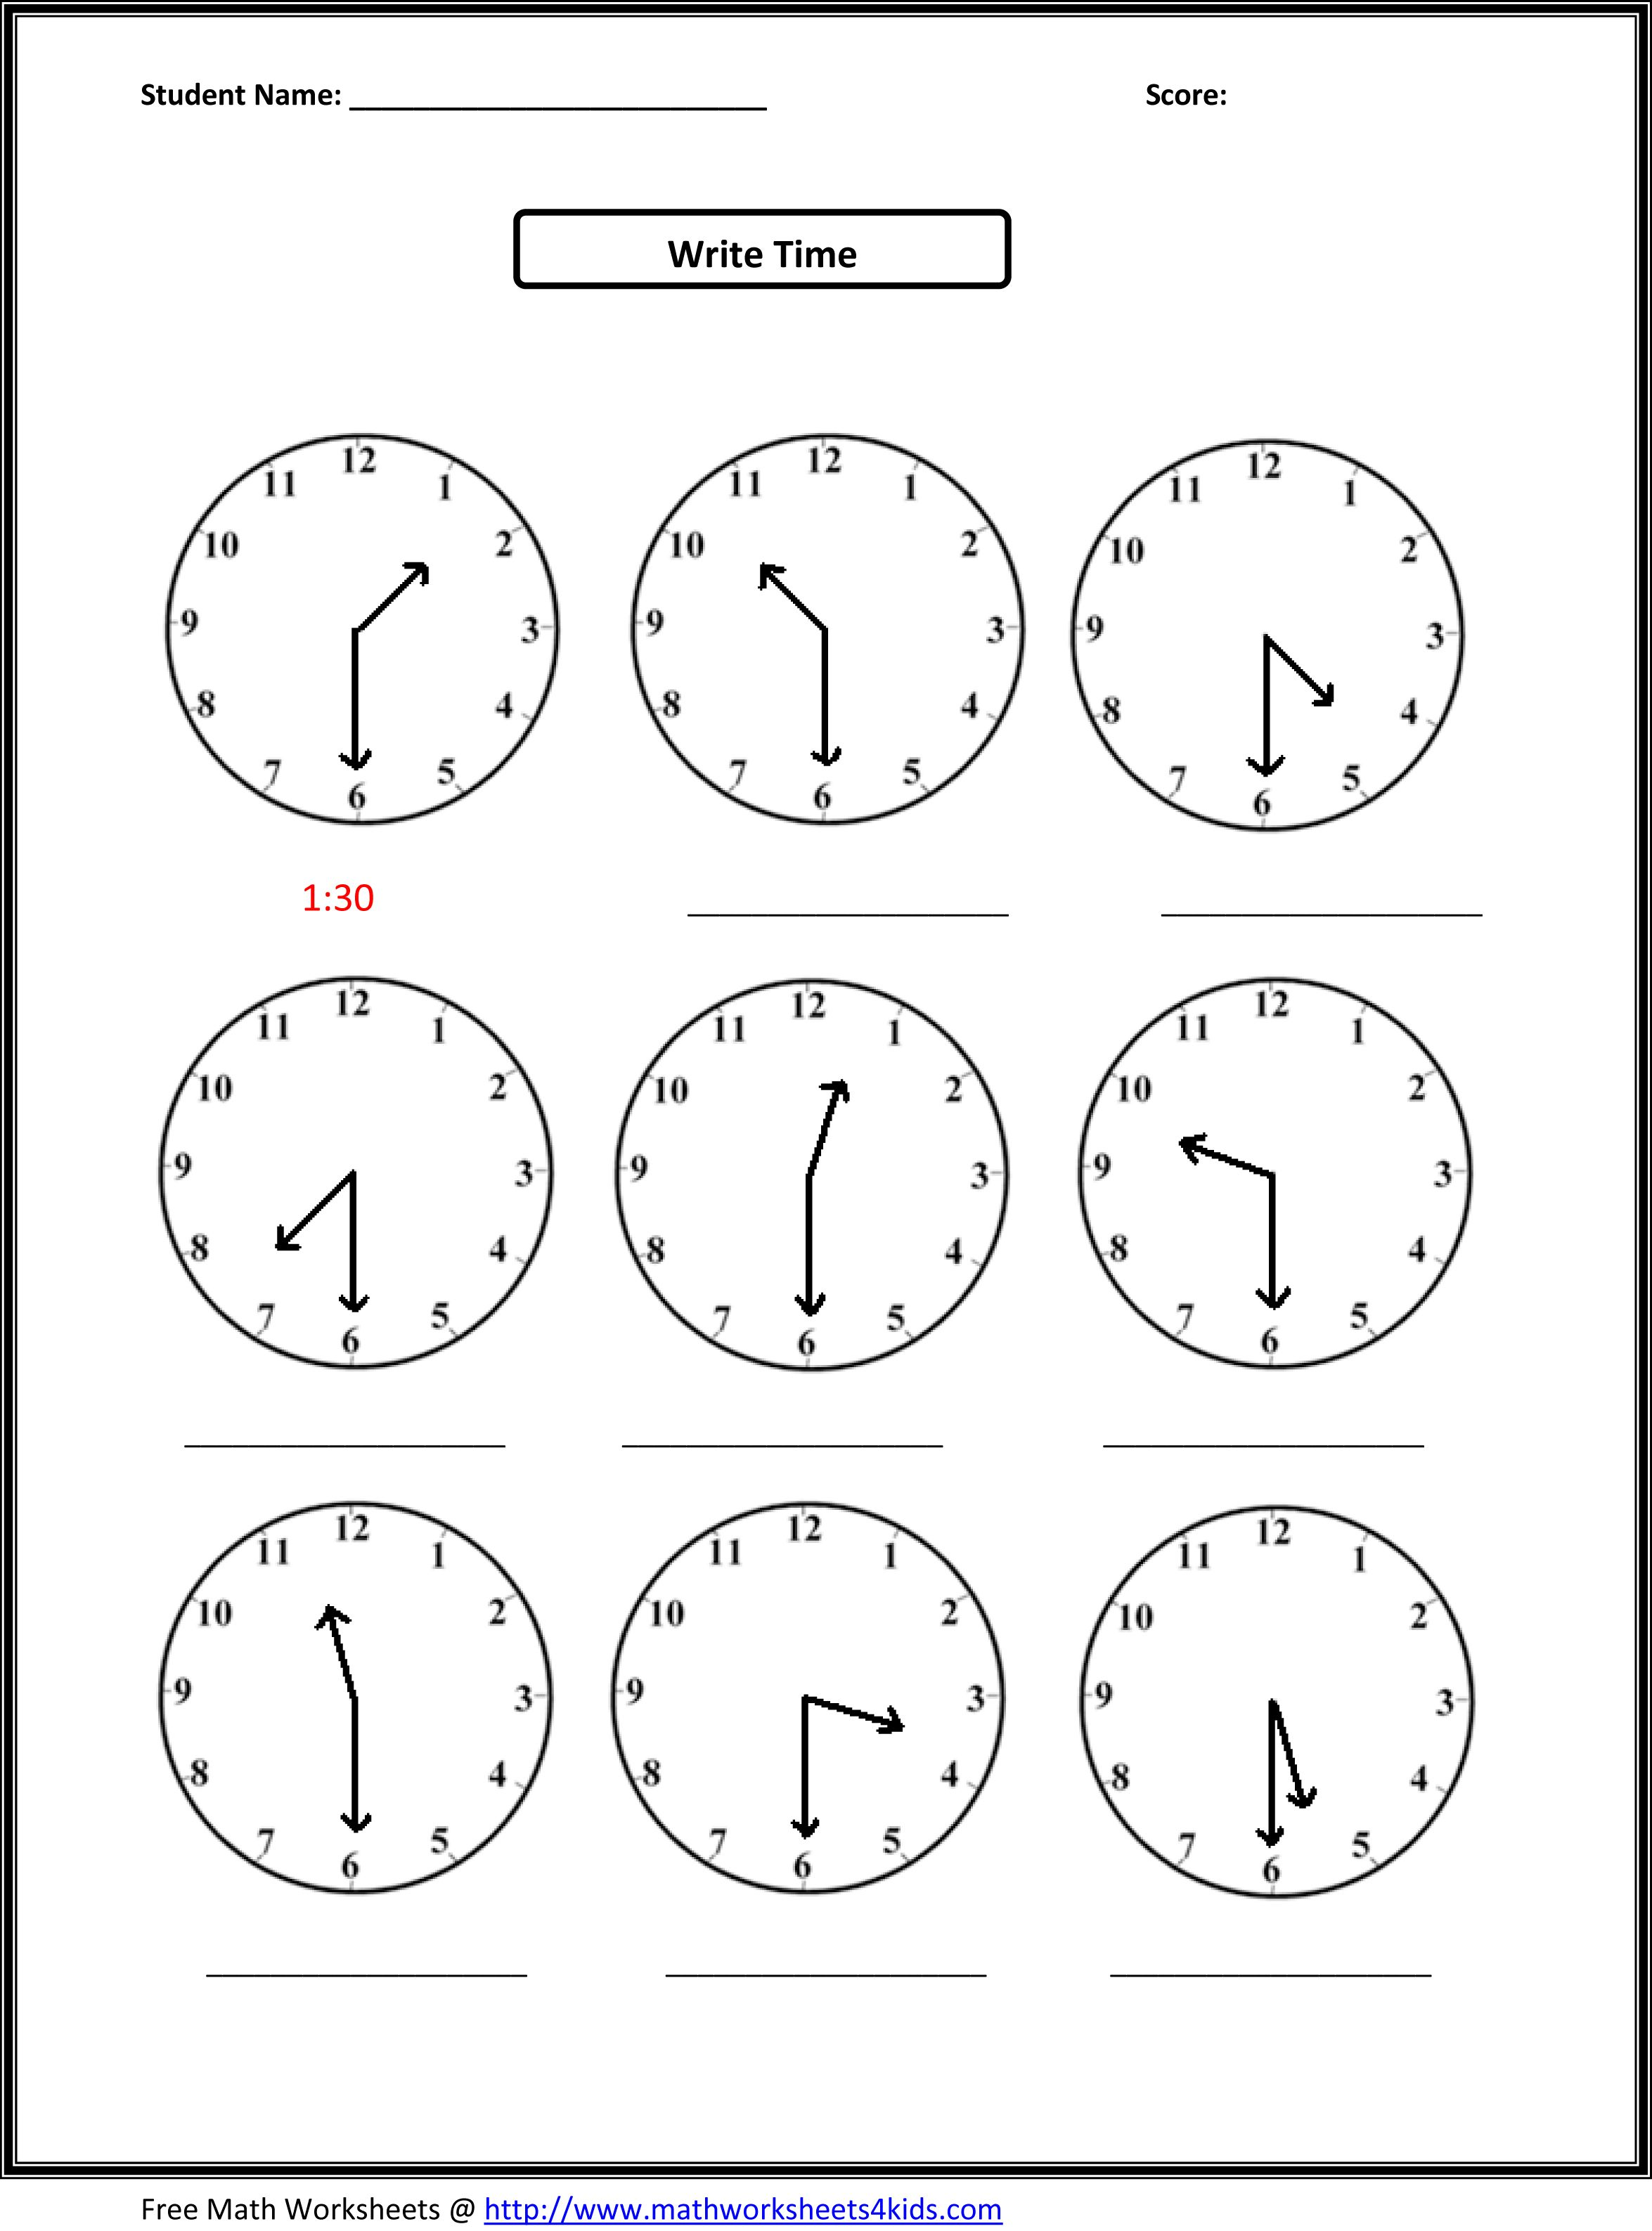 Proatmealus  Surprising Worksheet On Time For Grade   Reocurent With Lovely Free Printable Telling Time Worksheets Nd Grade  Reocurent With Amusing First Grade Math Worksheets Addition Also Crusades Worksheets In Addition Contraction Worksheets For Th Grade And Venn Diagram Practice Worksheets As Well As Coloring Worksheets Printable Additionally Adjective Clause Worksheets From Reocurentcom With Proatmealus  Lovely Worksheet On Time For Grade   Reocurent With Amusing Free Printable Telling Time Worksheets Nd Grade  Reocurent And Surprising First Grade Math Worksheets Addition Also Crusades Worksheets In Addition Contraction Worksheets For Th Grade From Reocurentcom